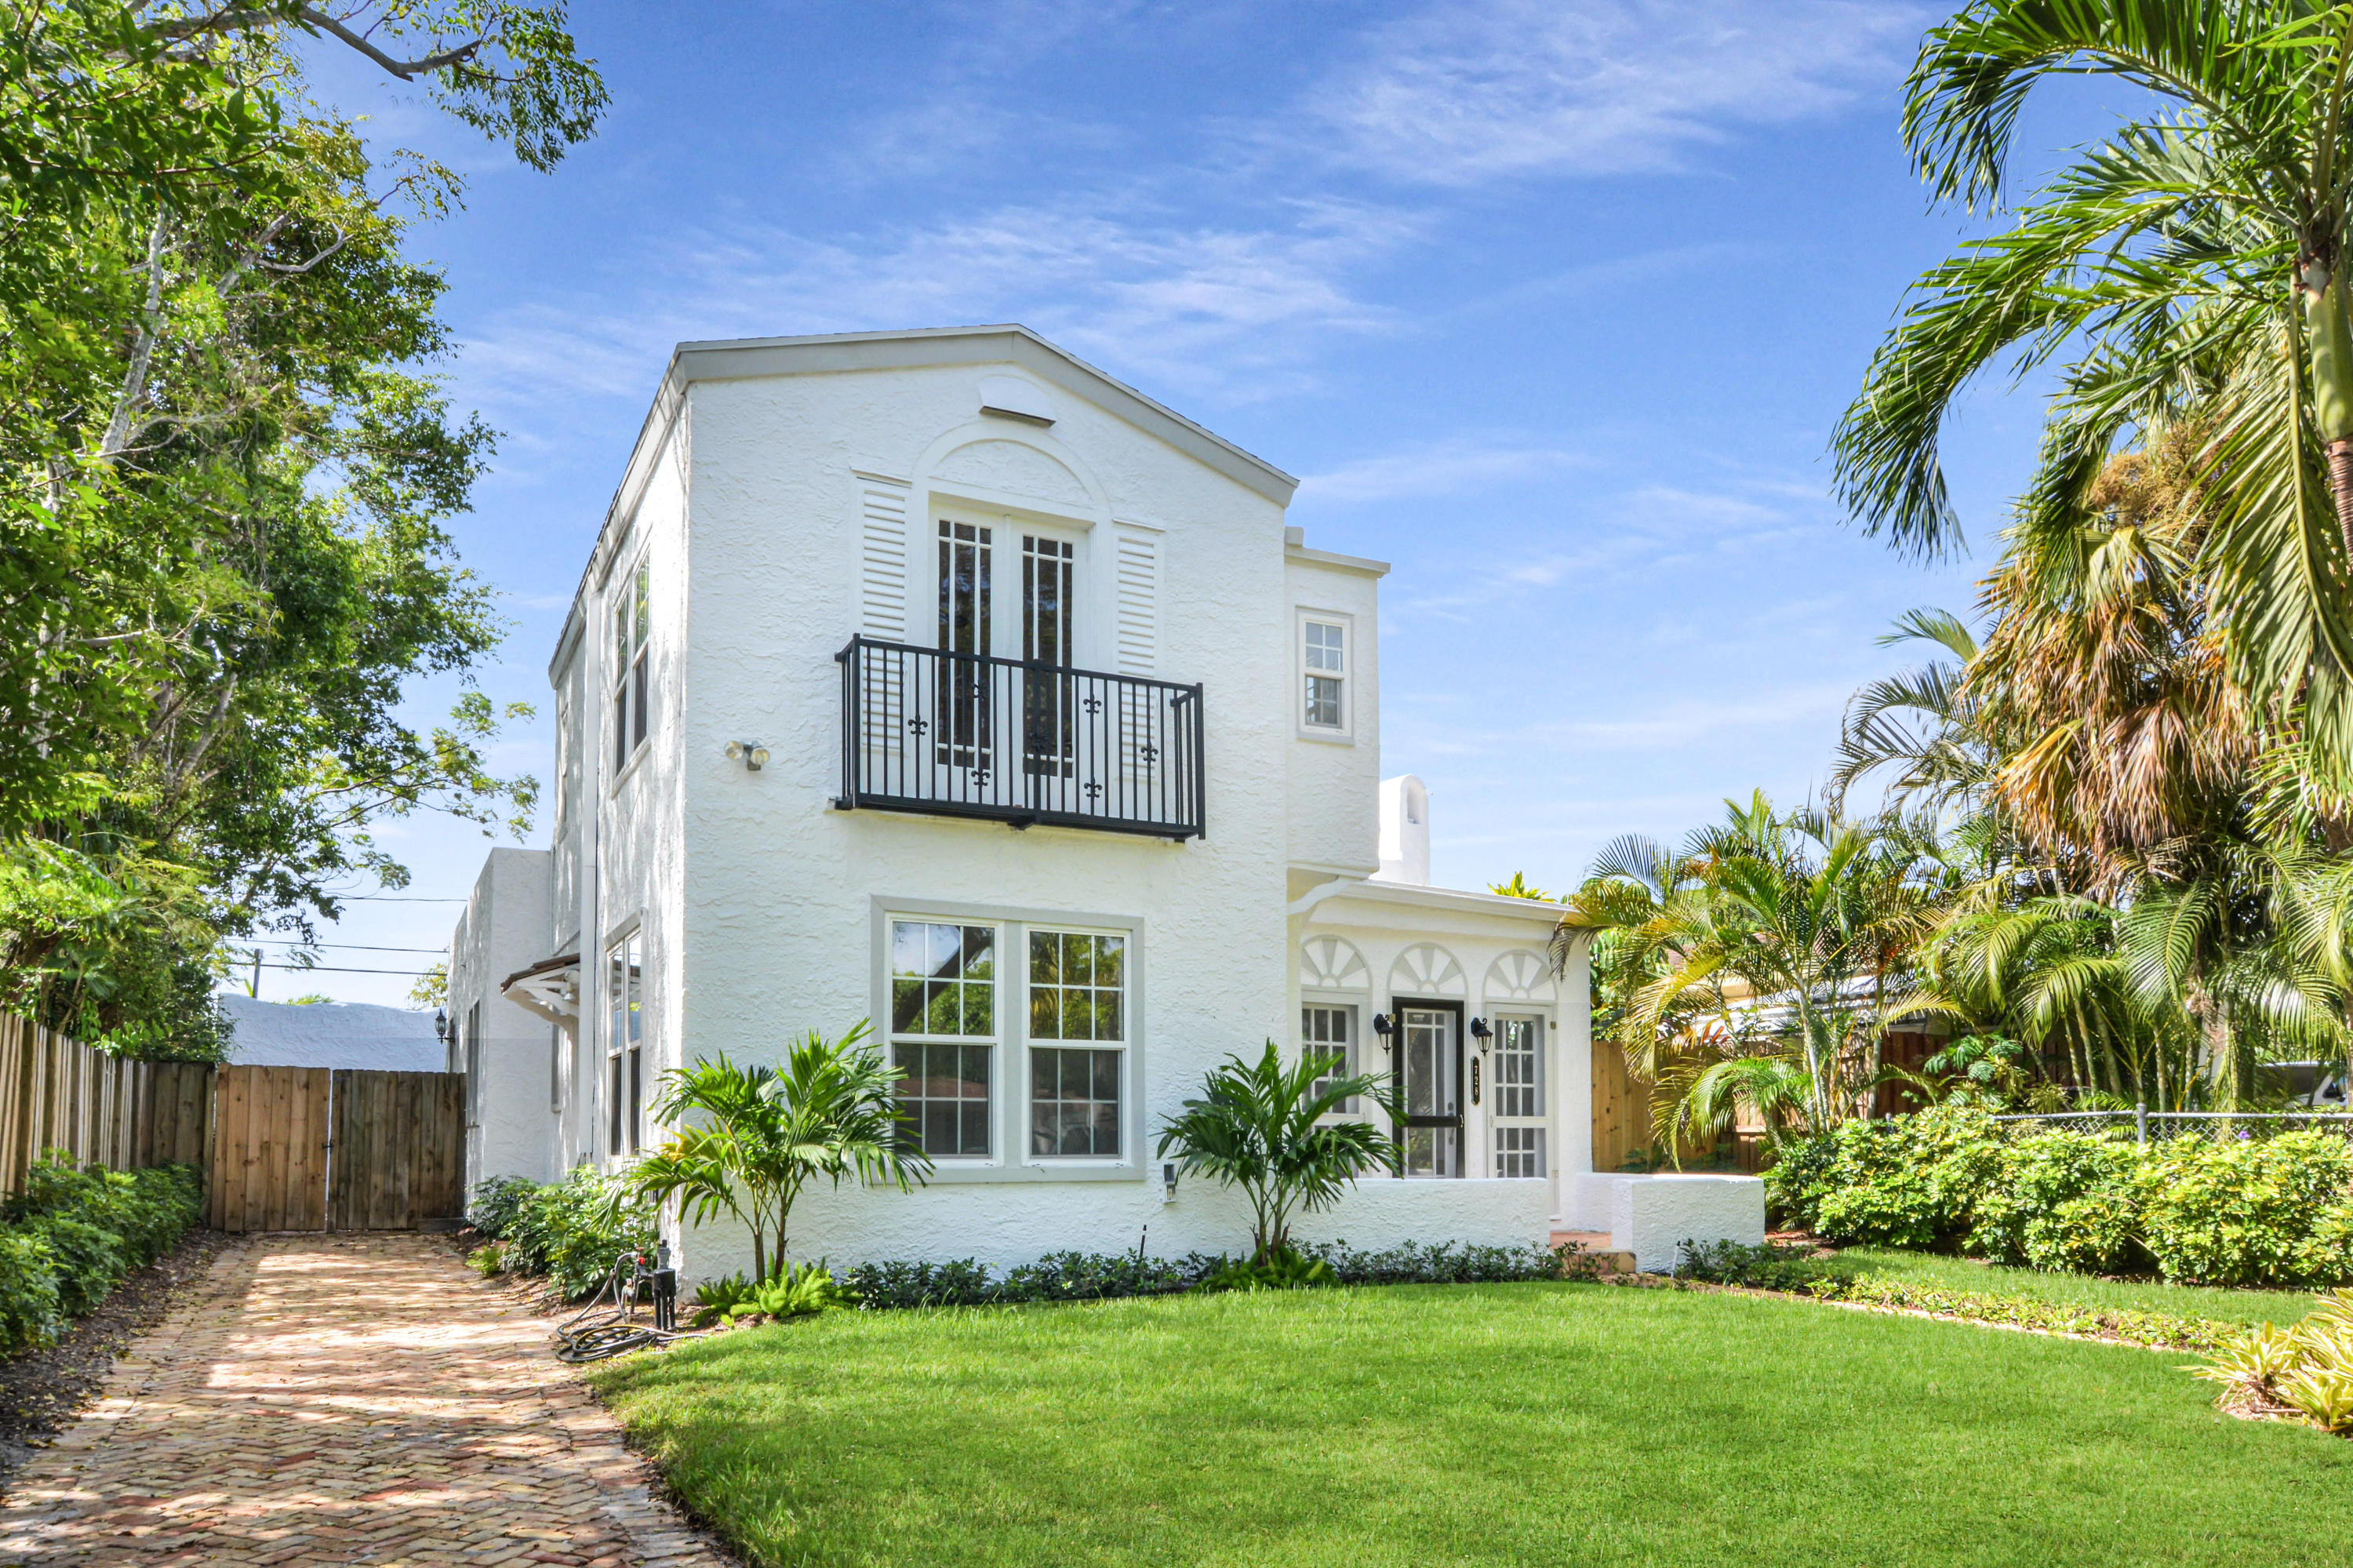 Details for 728 Lytle Street, West Palm Beach, FL 33405